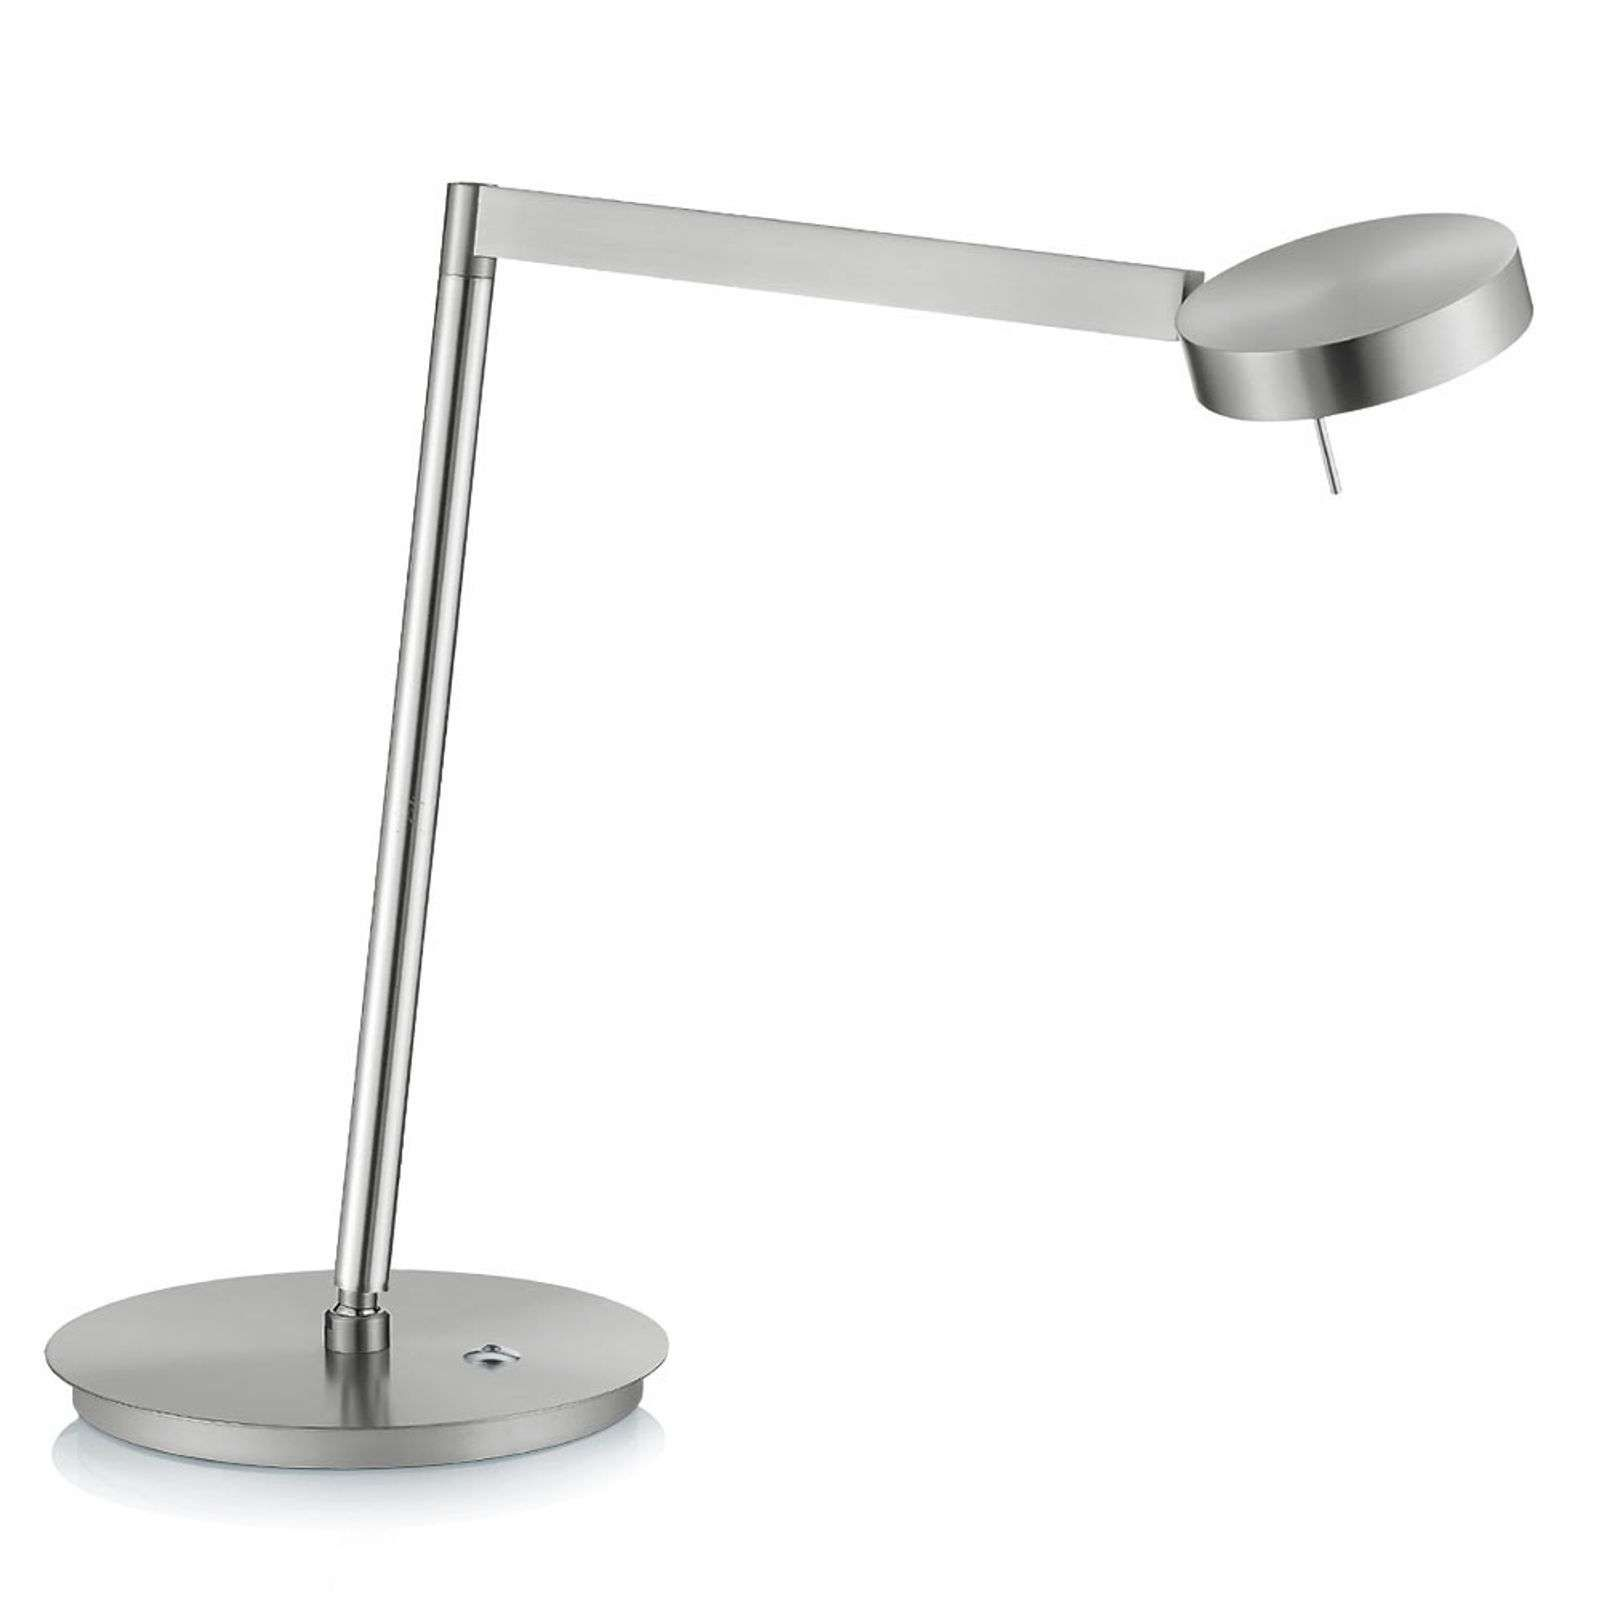 Lampe A Poser Led Reading Nickel Variateur Tactile In 2020 Tafellamp Tafelverlichting Moderne Tafellamp